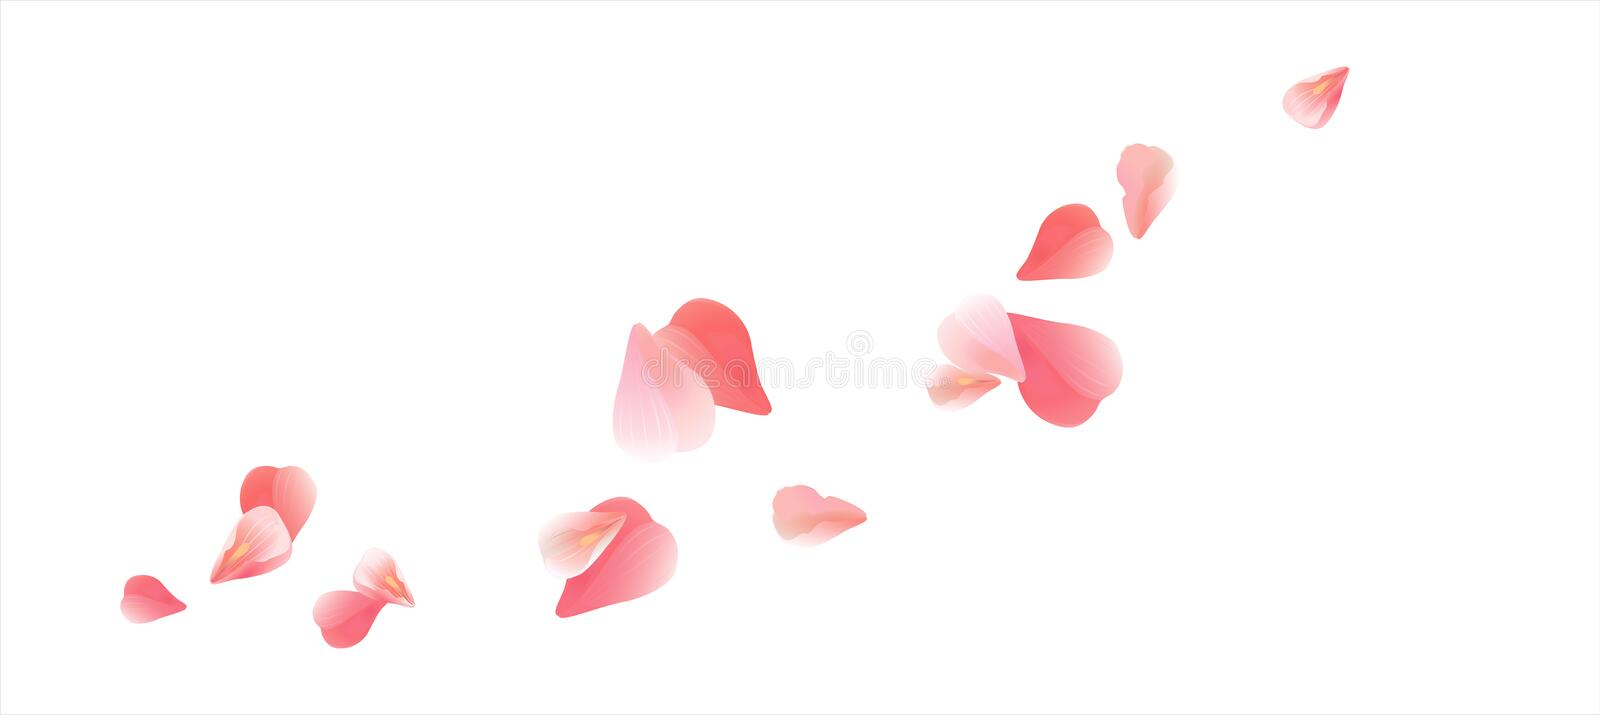 Flying light Pink Red petals isolated on white background. Roses petals. Falling Cherry flowers. Vector EPS 10 cmyk vector illustration